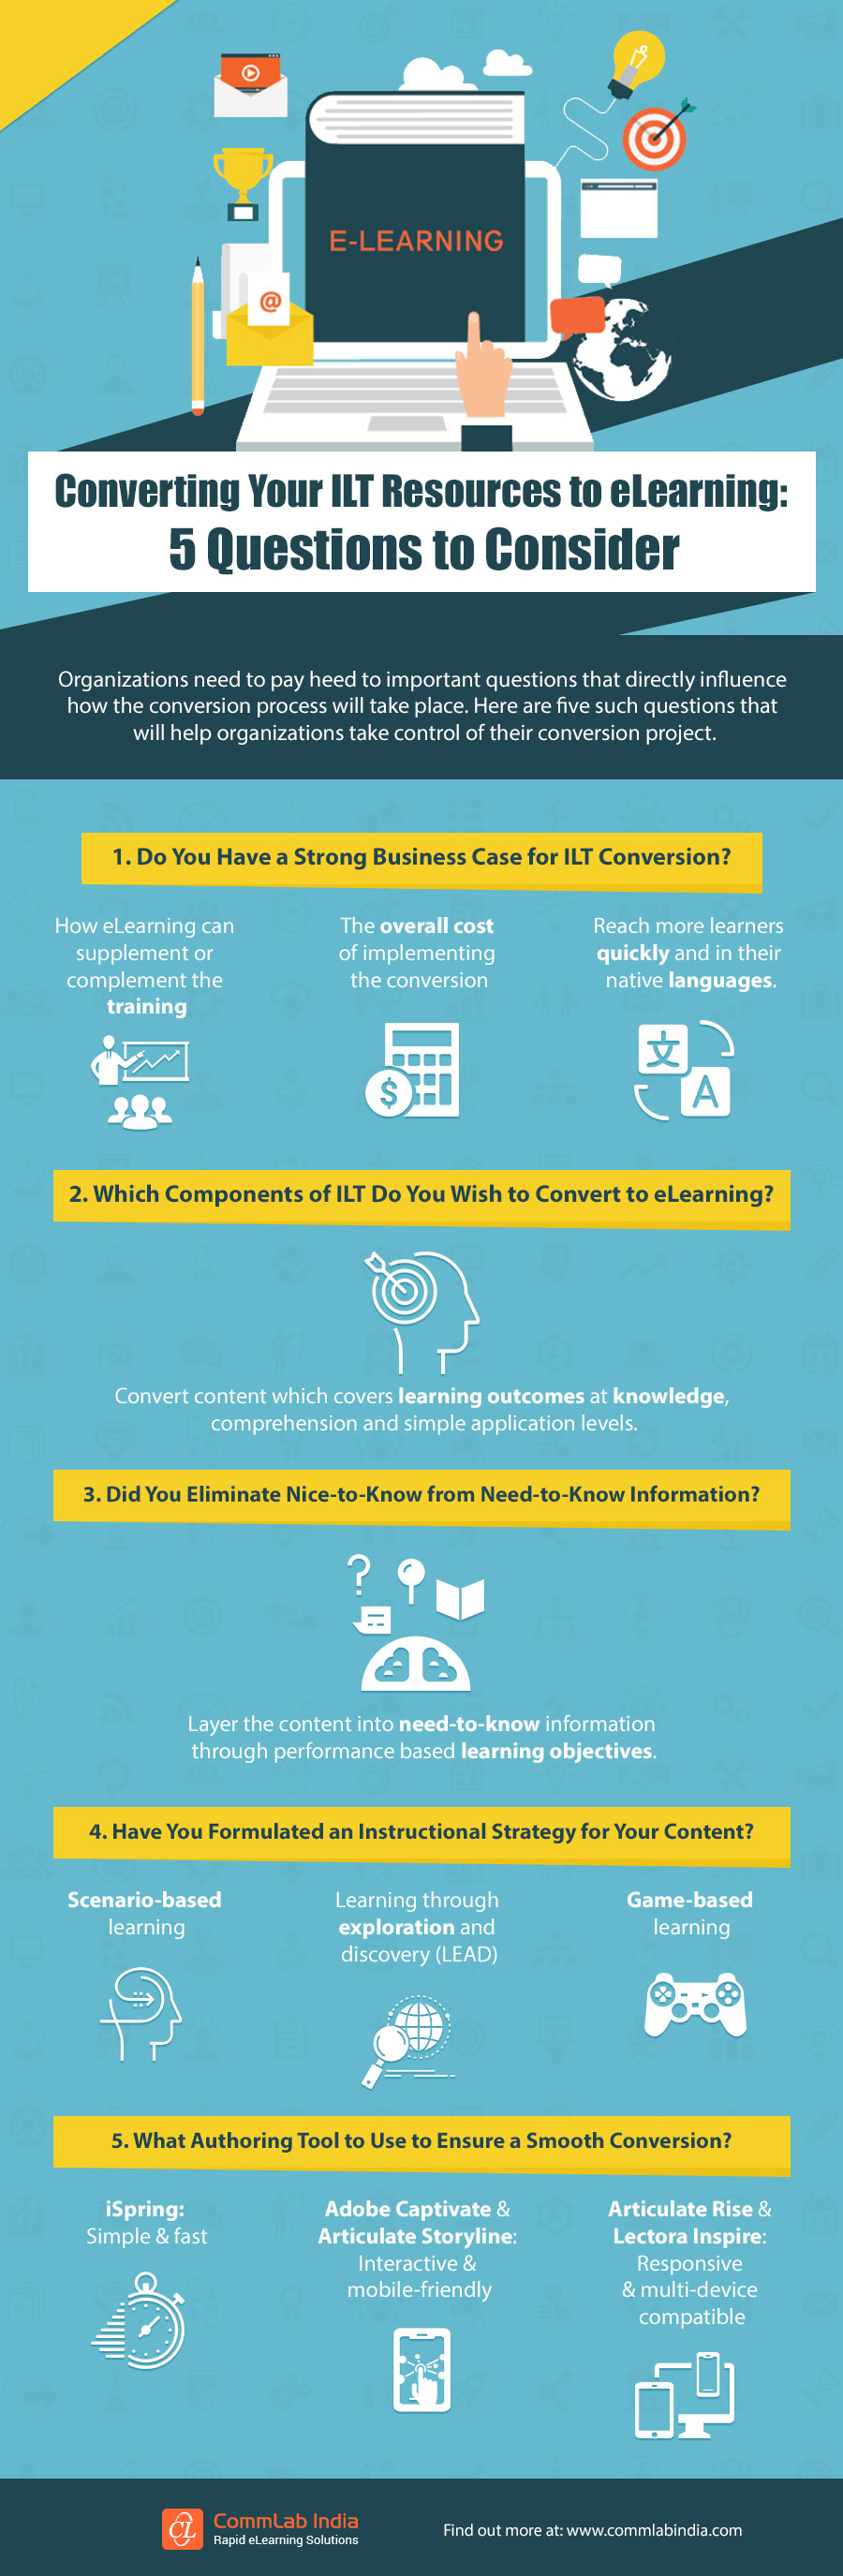 Converting Your ILT Resources to eLearning: 5 Questions to Consider [Infographic]